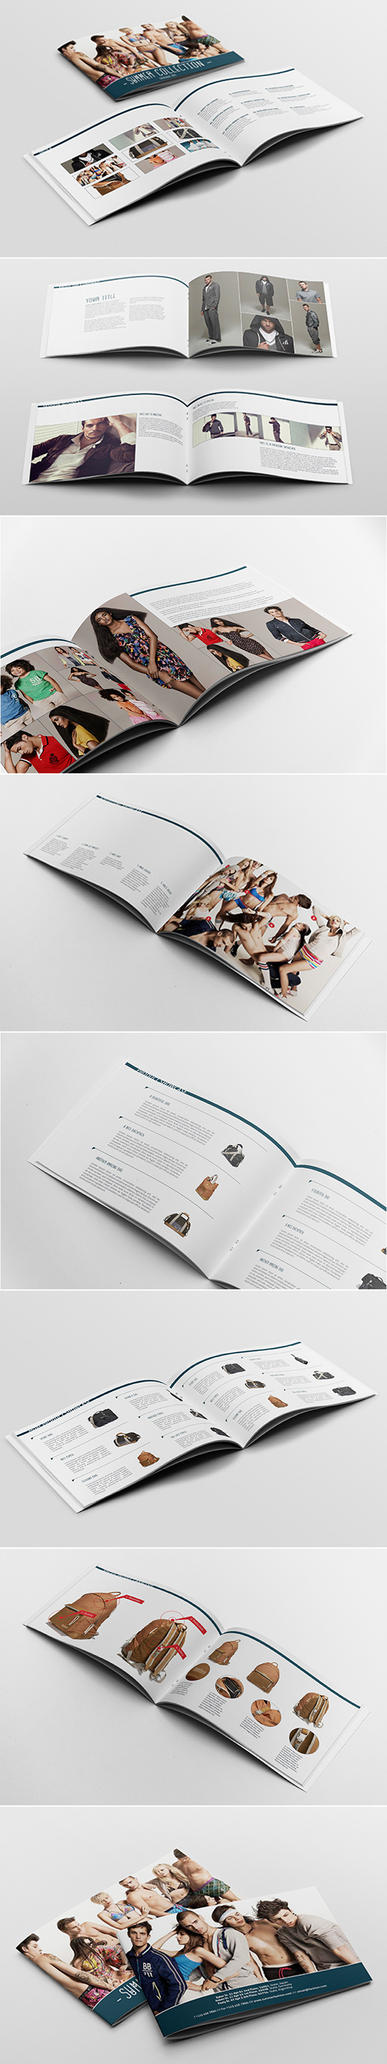 Catalogue / Portoflio Template by andre2886